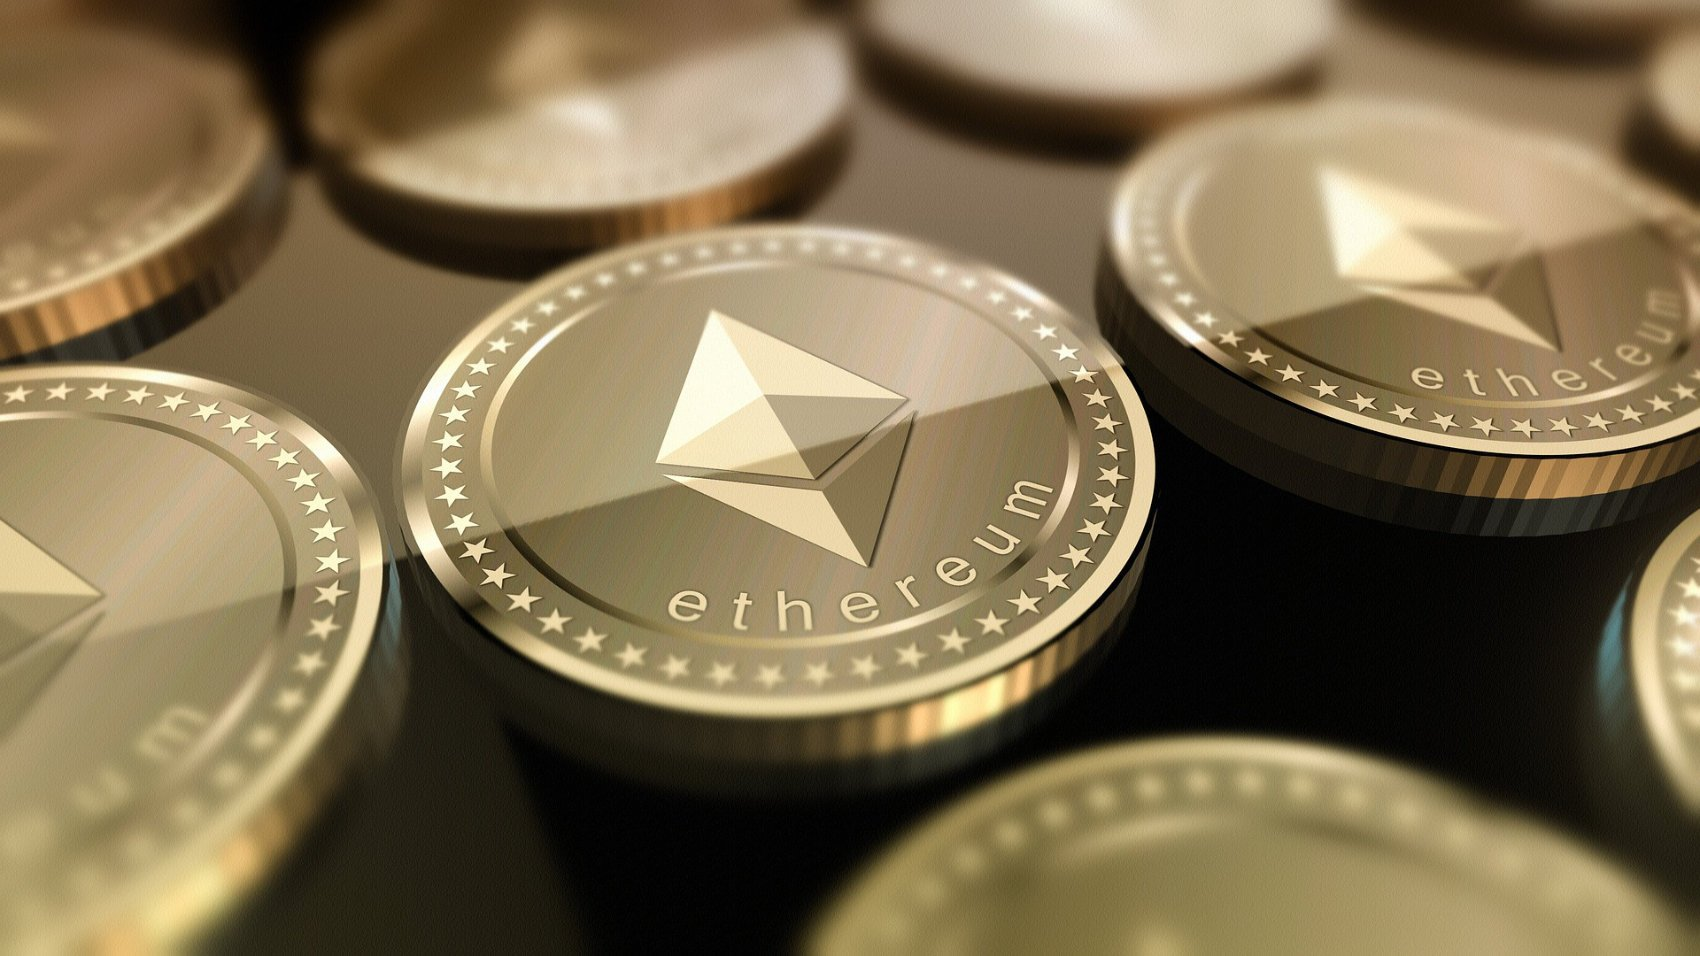 Ethereum Currency - Image by Peter Patel